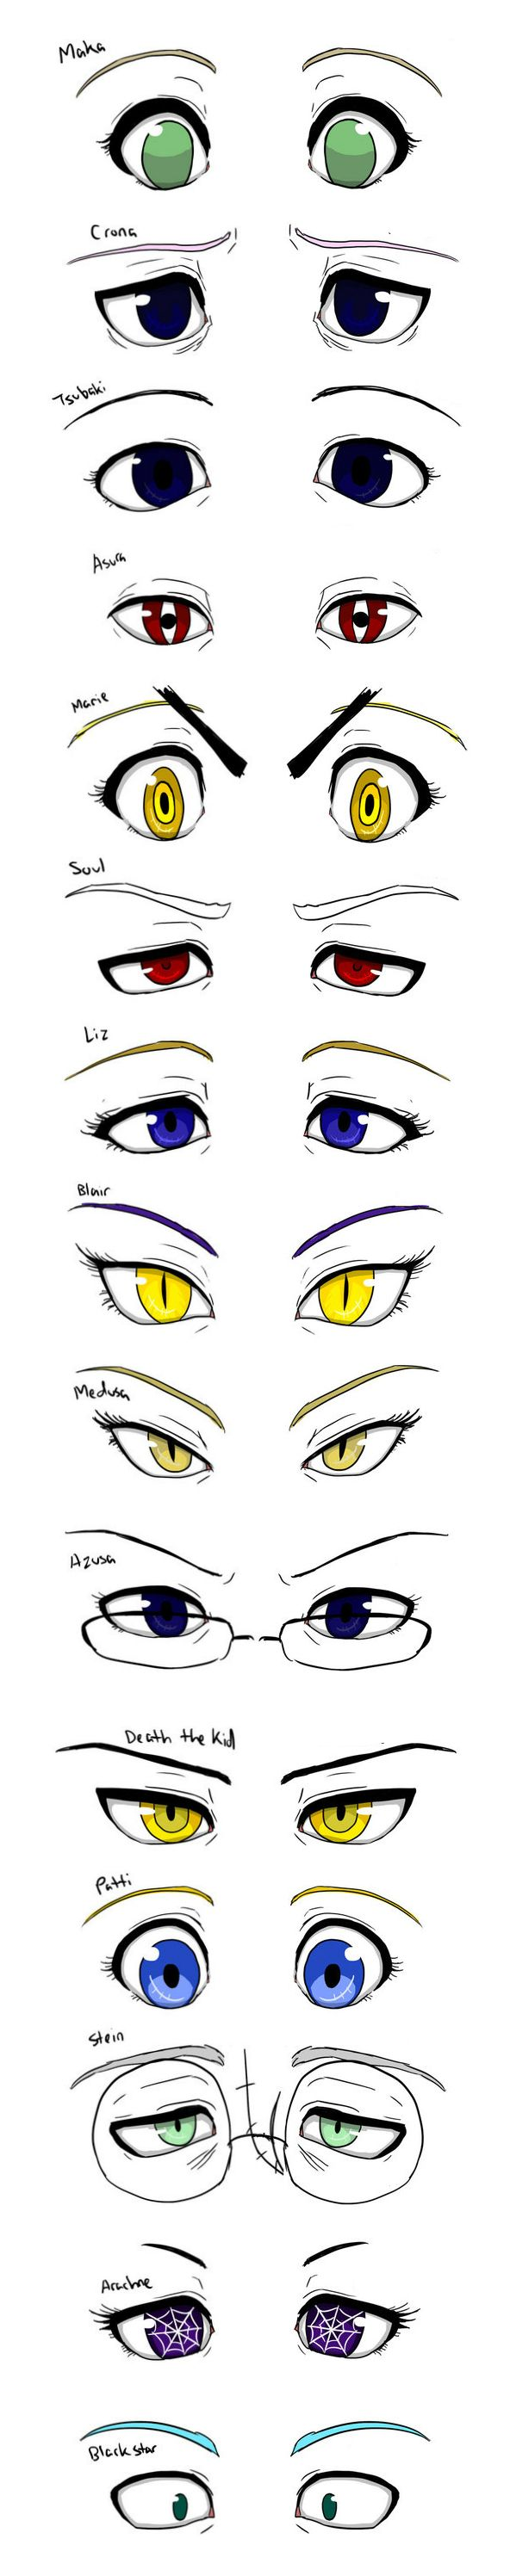 Character Design Eyes : Best images about character anatomy eyes on